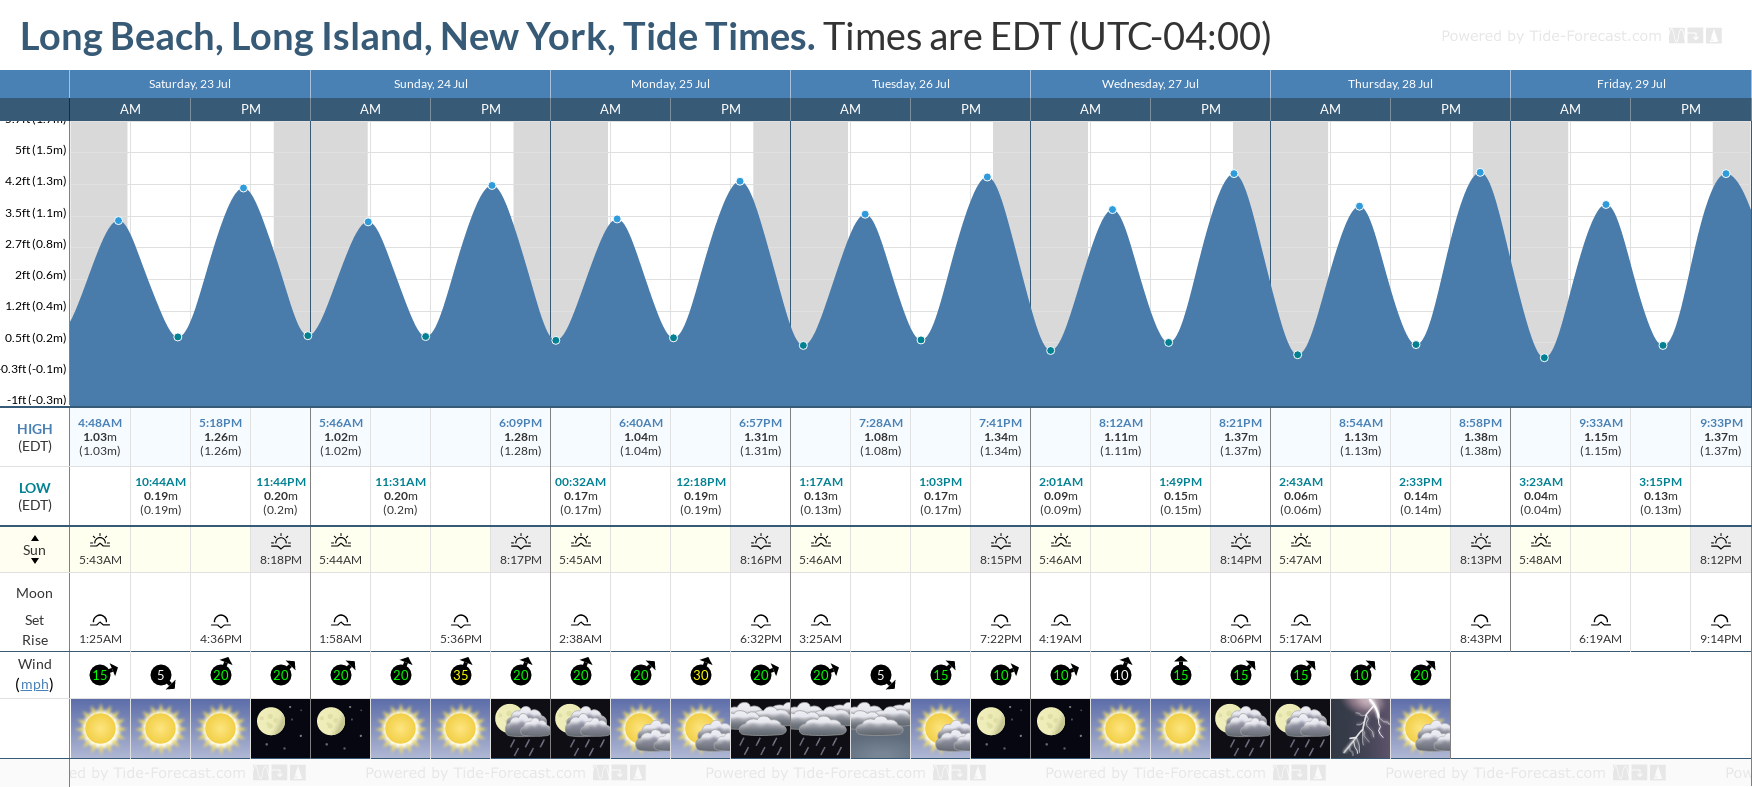 Long Beach, Long Island, New York Tide Chart including high and low tide tide times for the next 7 days